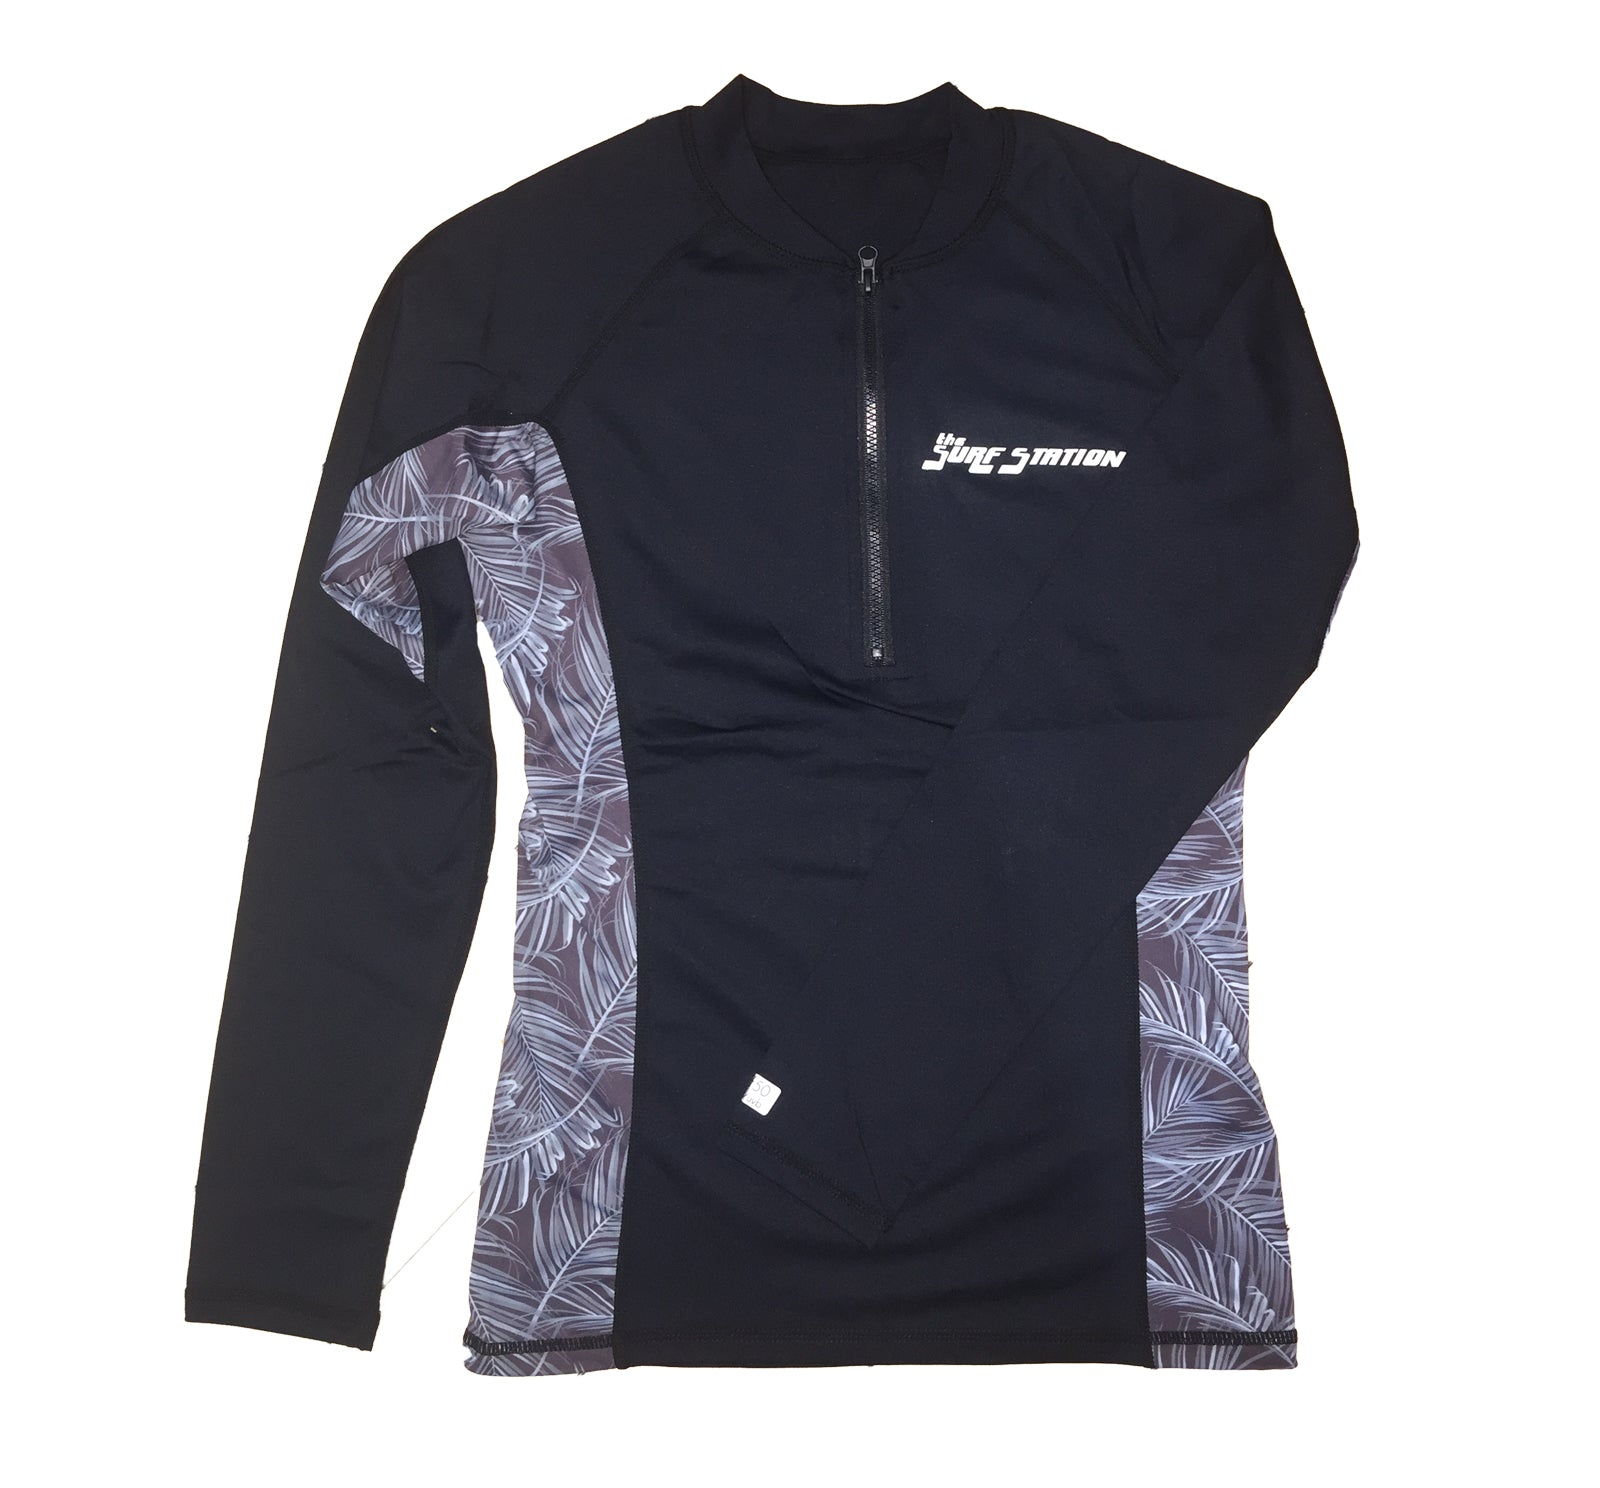 Surf Station Cruize Women's L/S Rashguard